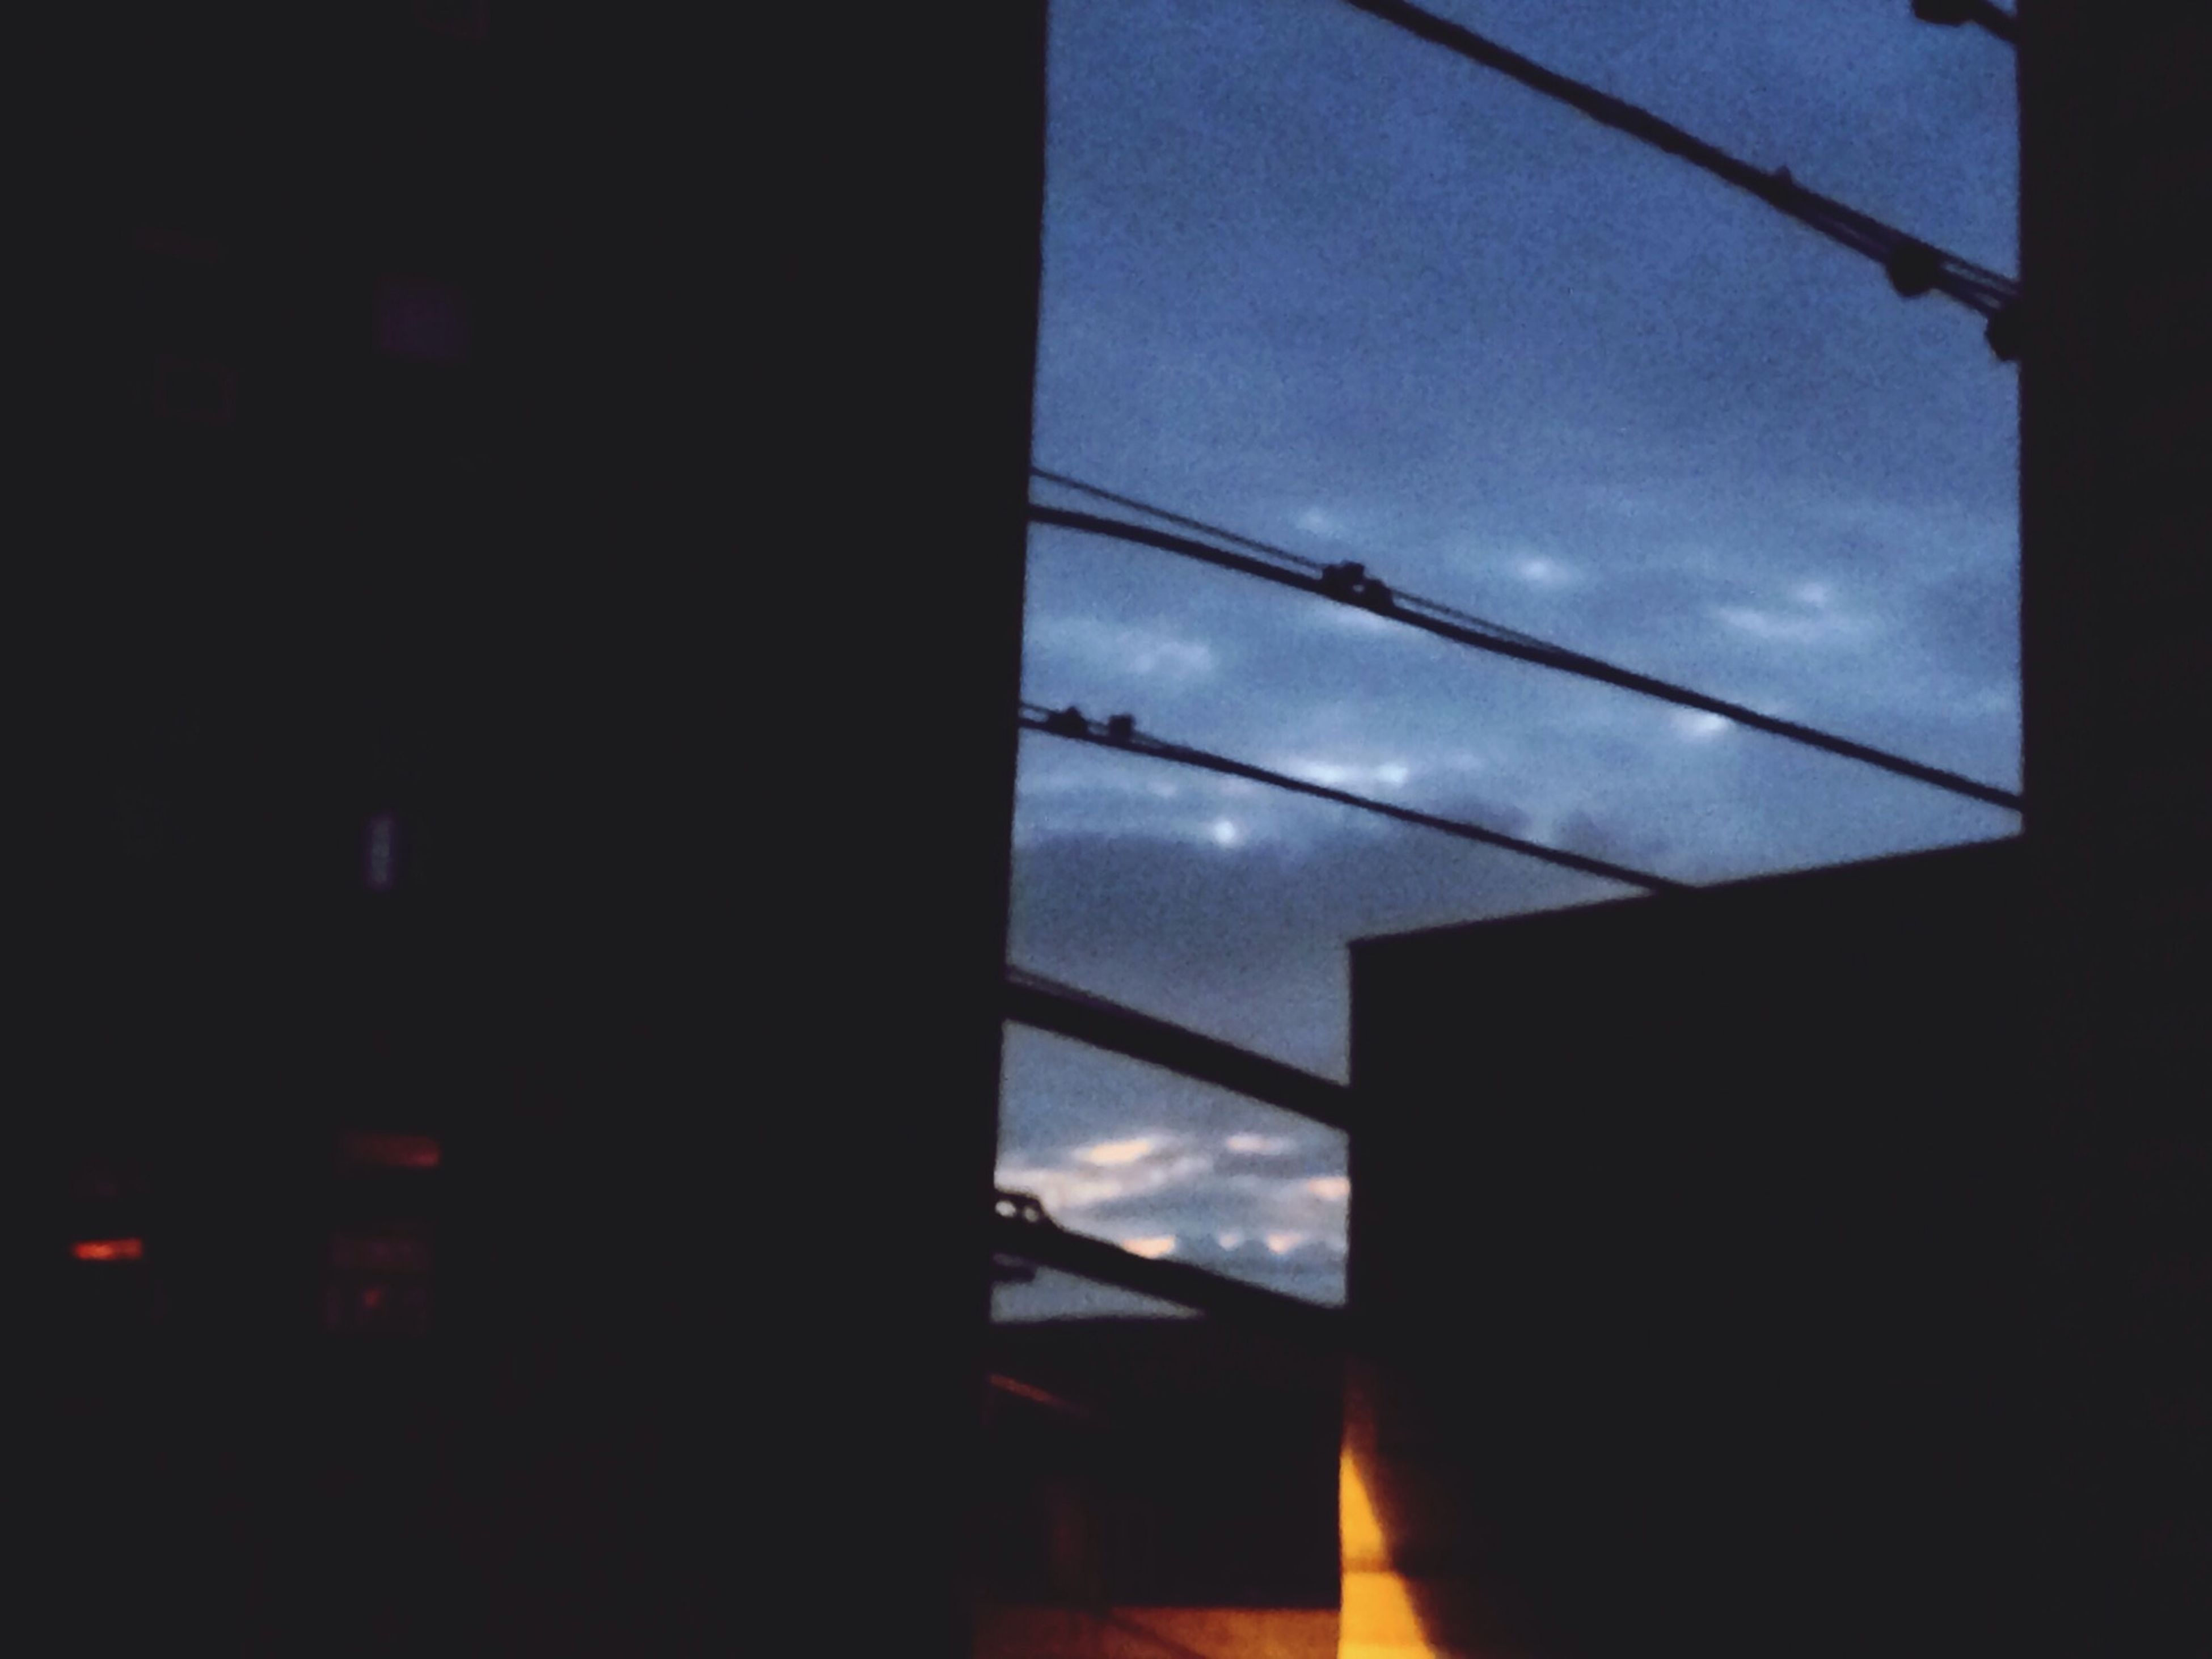 sky, low angle view, architecture, built structure, silhouette, building exterior, window, cloud - sky, dark, glass - material, cloud, sunset, building, dusk, no people, illuminated, city, indoors, blue, sunlight